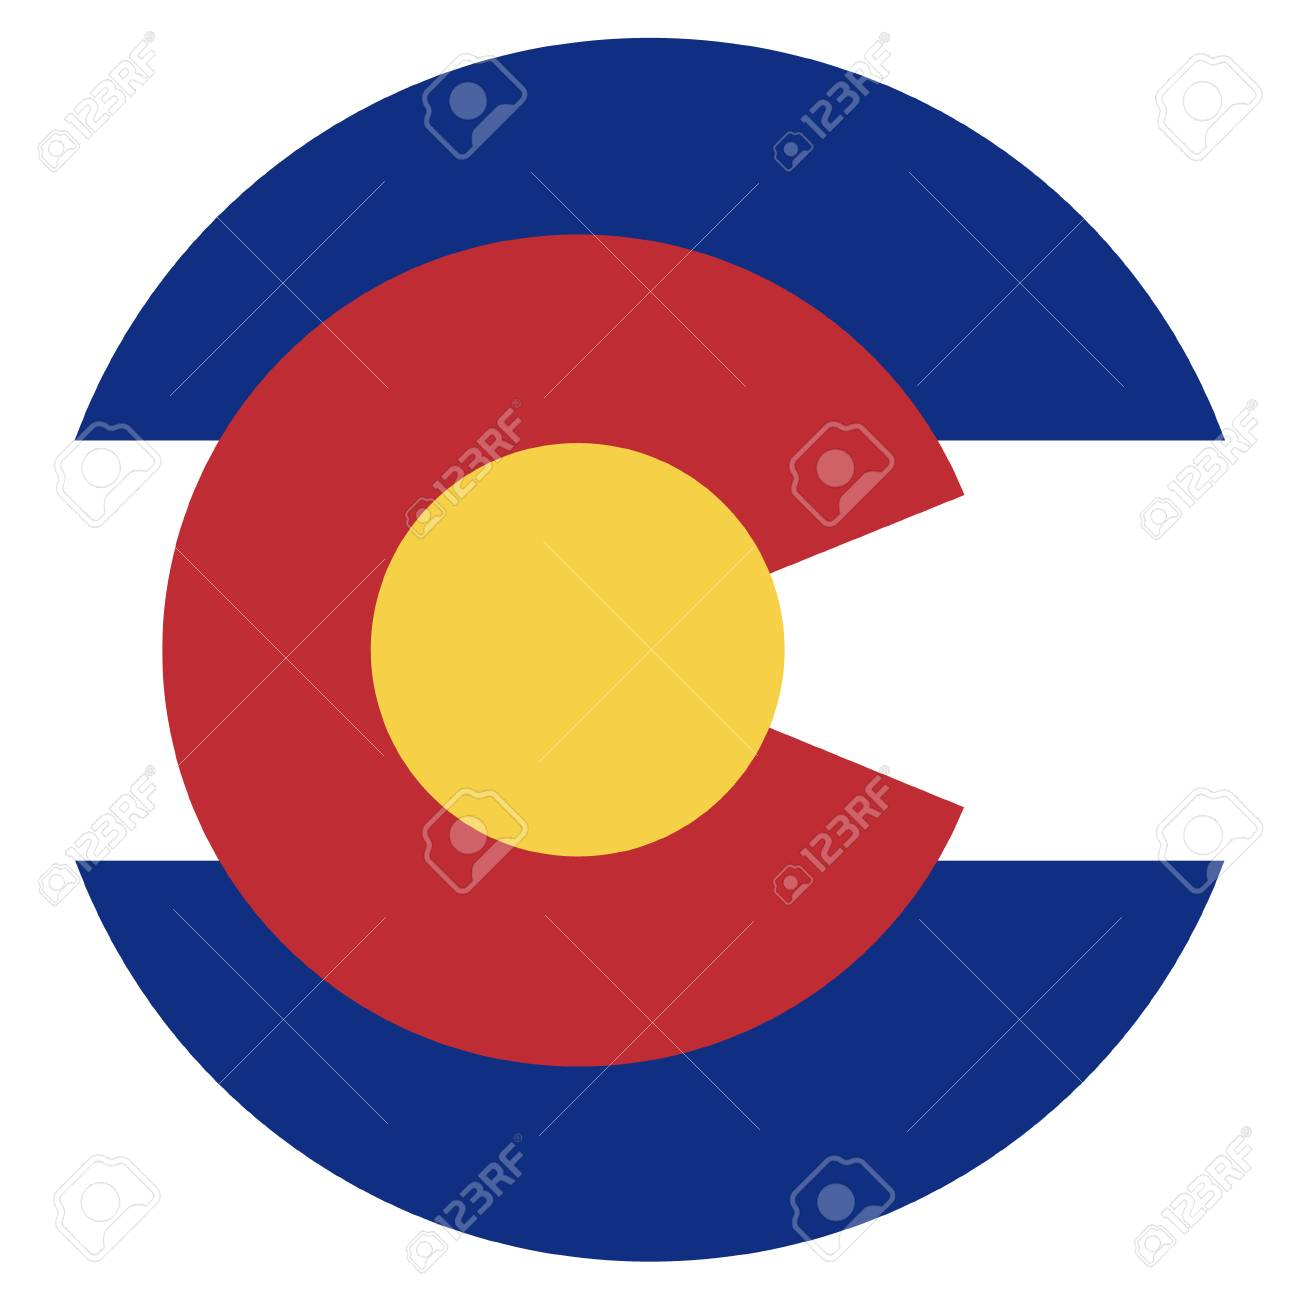 Round Colorado State Flag Vector Icon Isolated On White Background. USA Colorado  State Flag Button